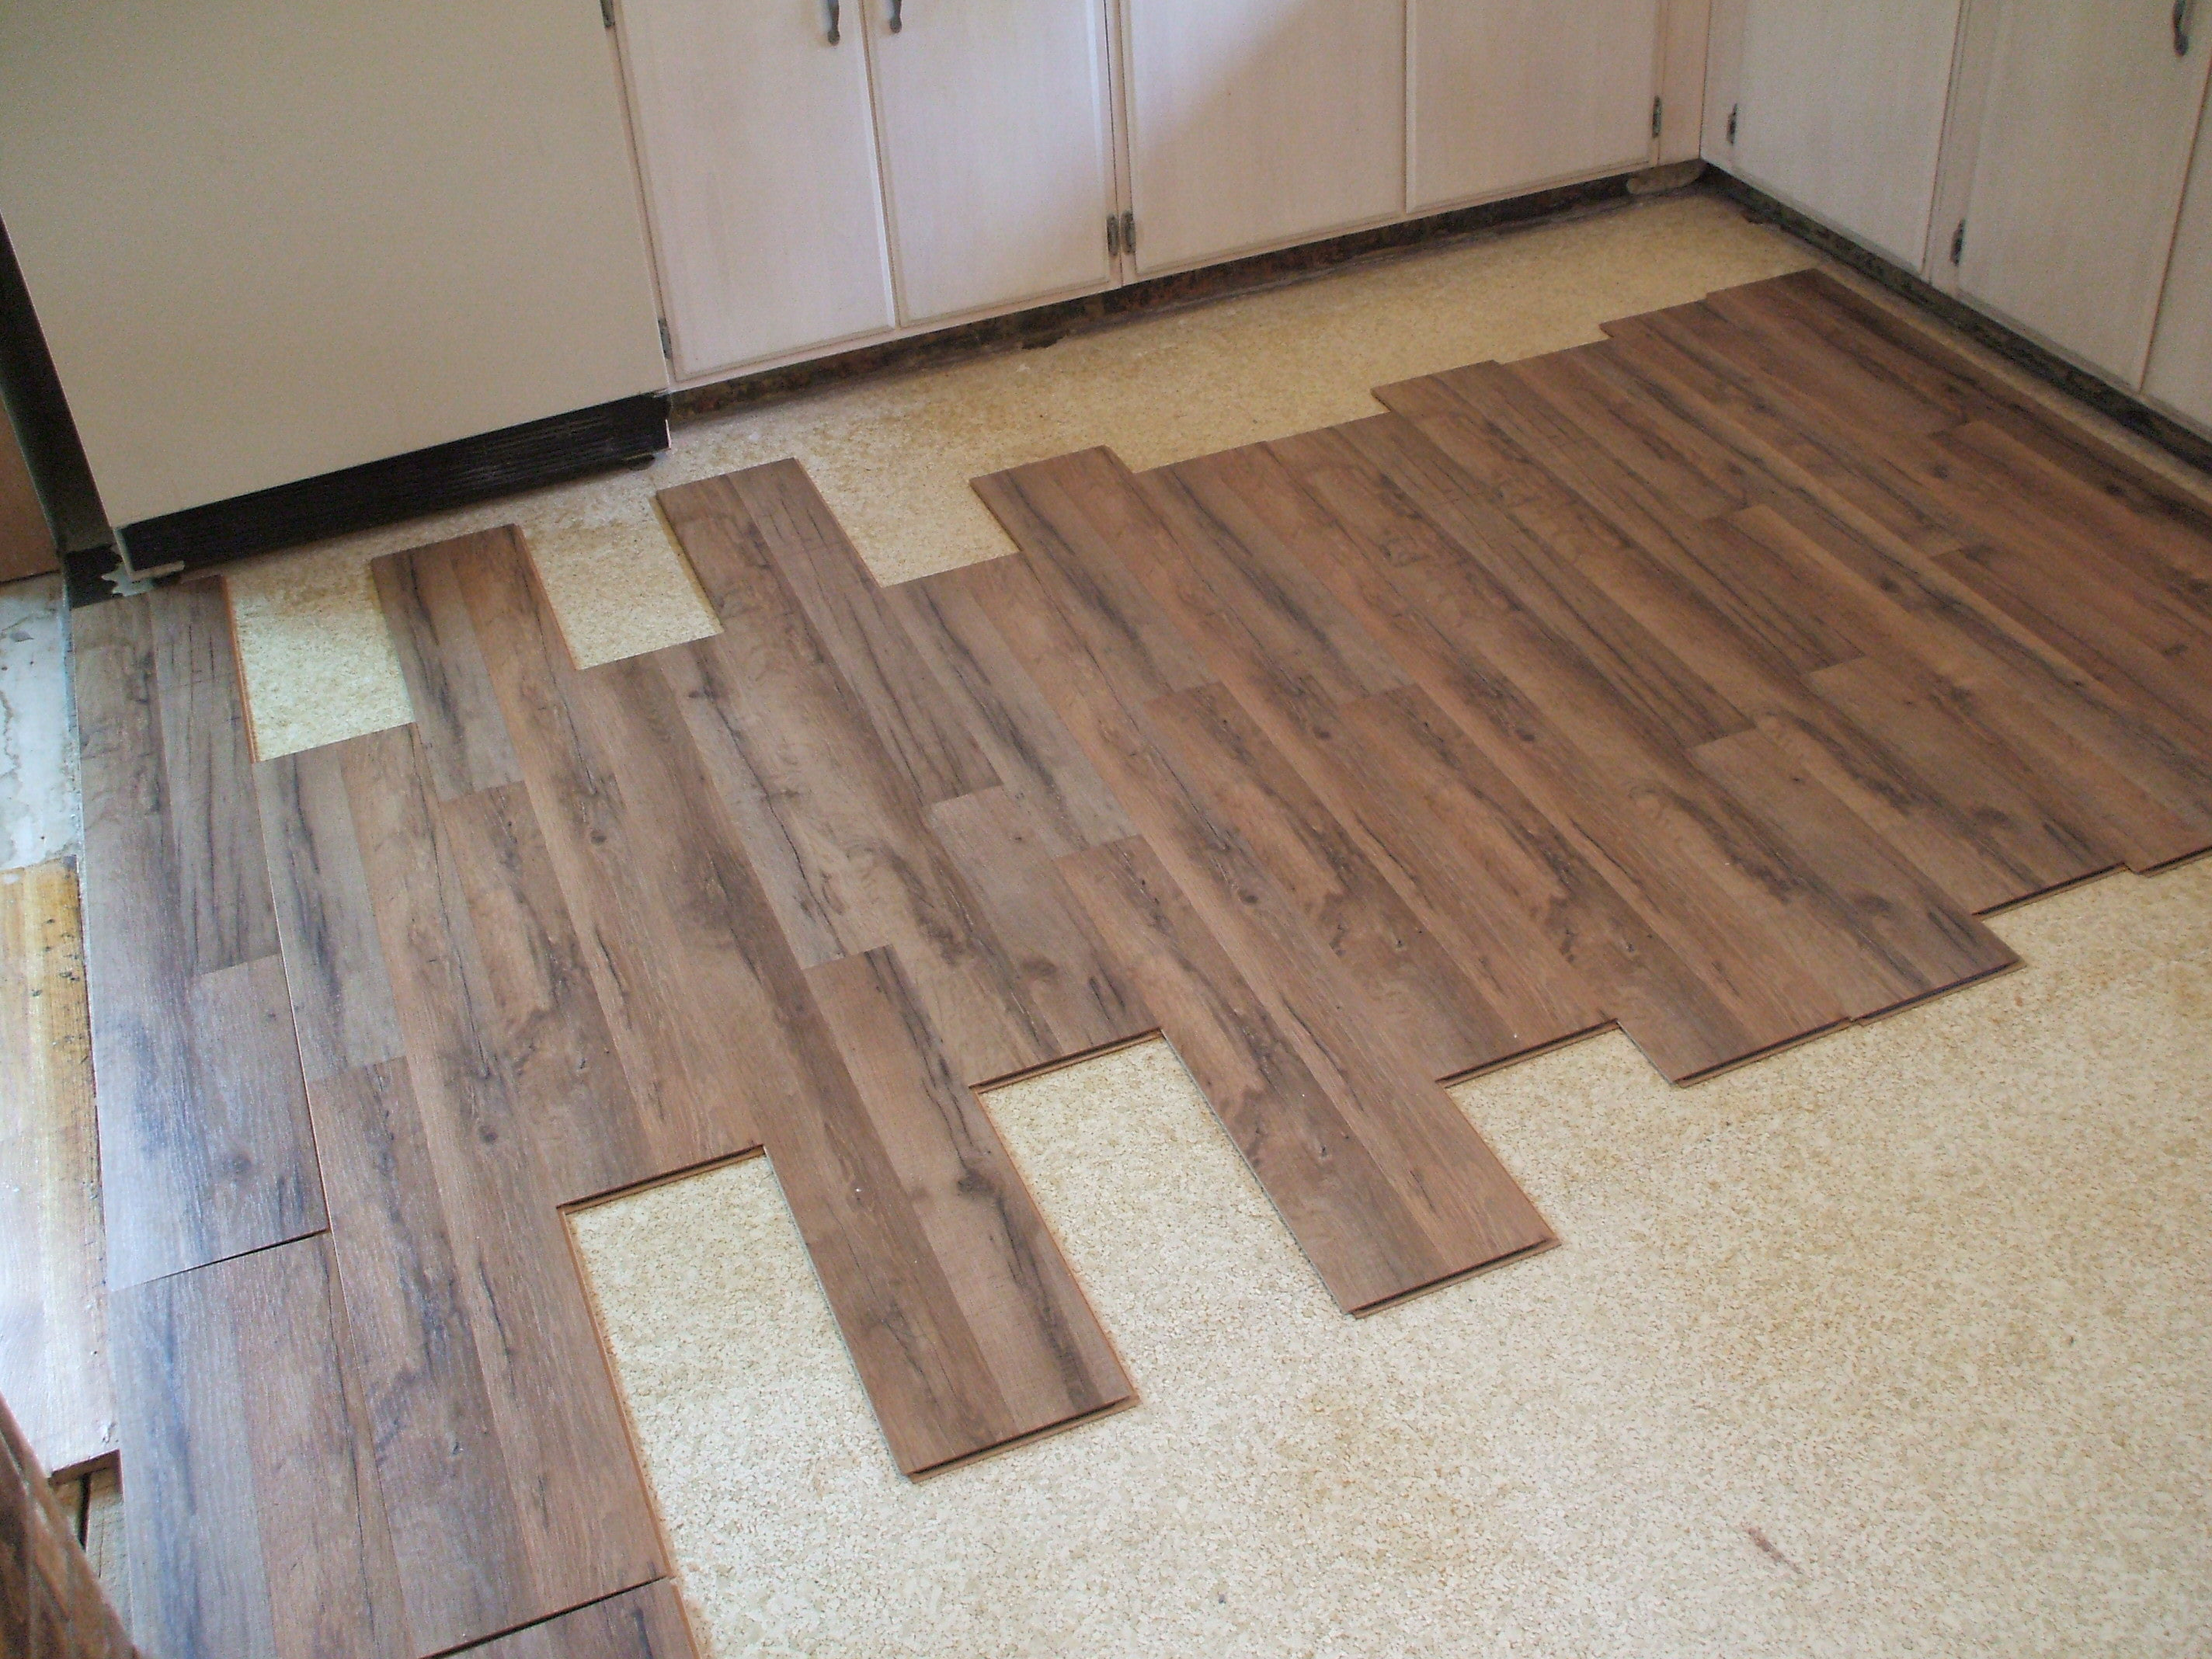 Flooring Options For Your Rental Home Which Is Best - Best flooring to use in bathroom